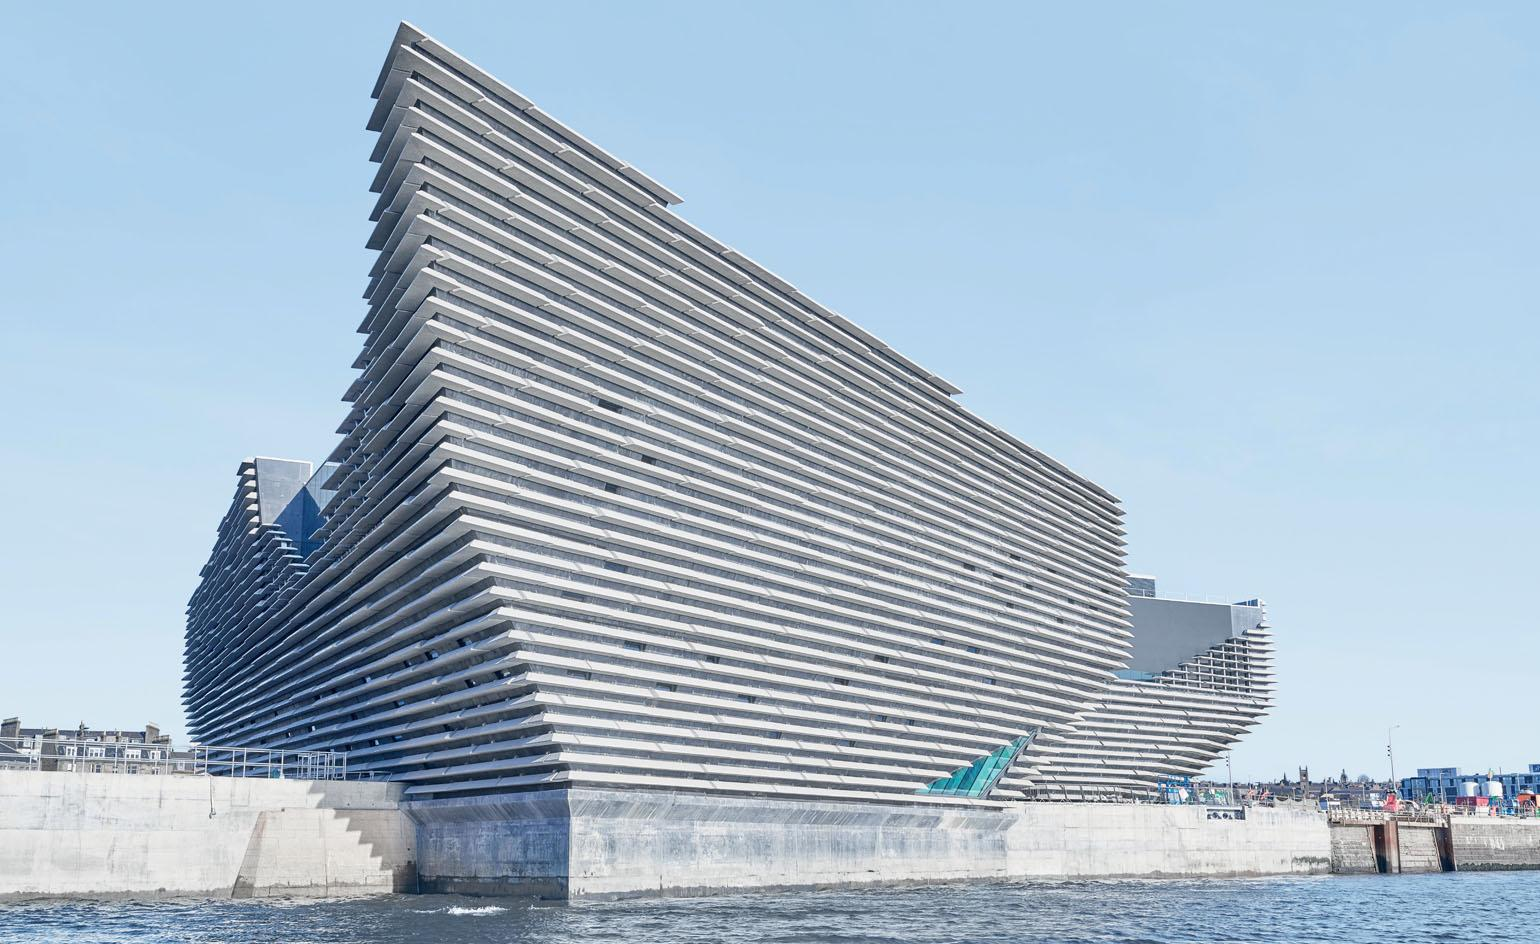 V&A Dundee wins Wallpaper* Design Award for Best New Public Building